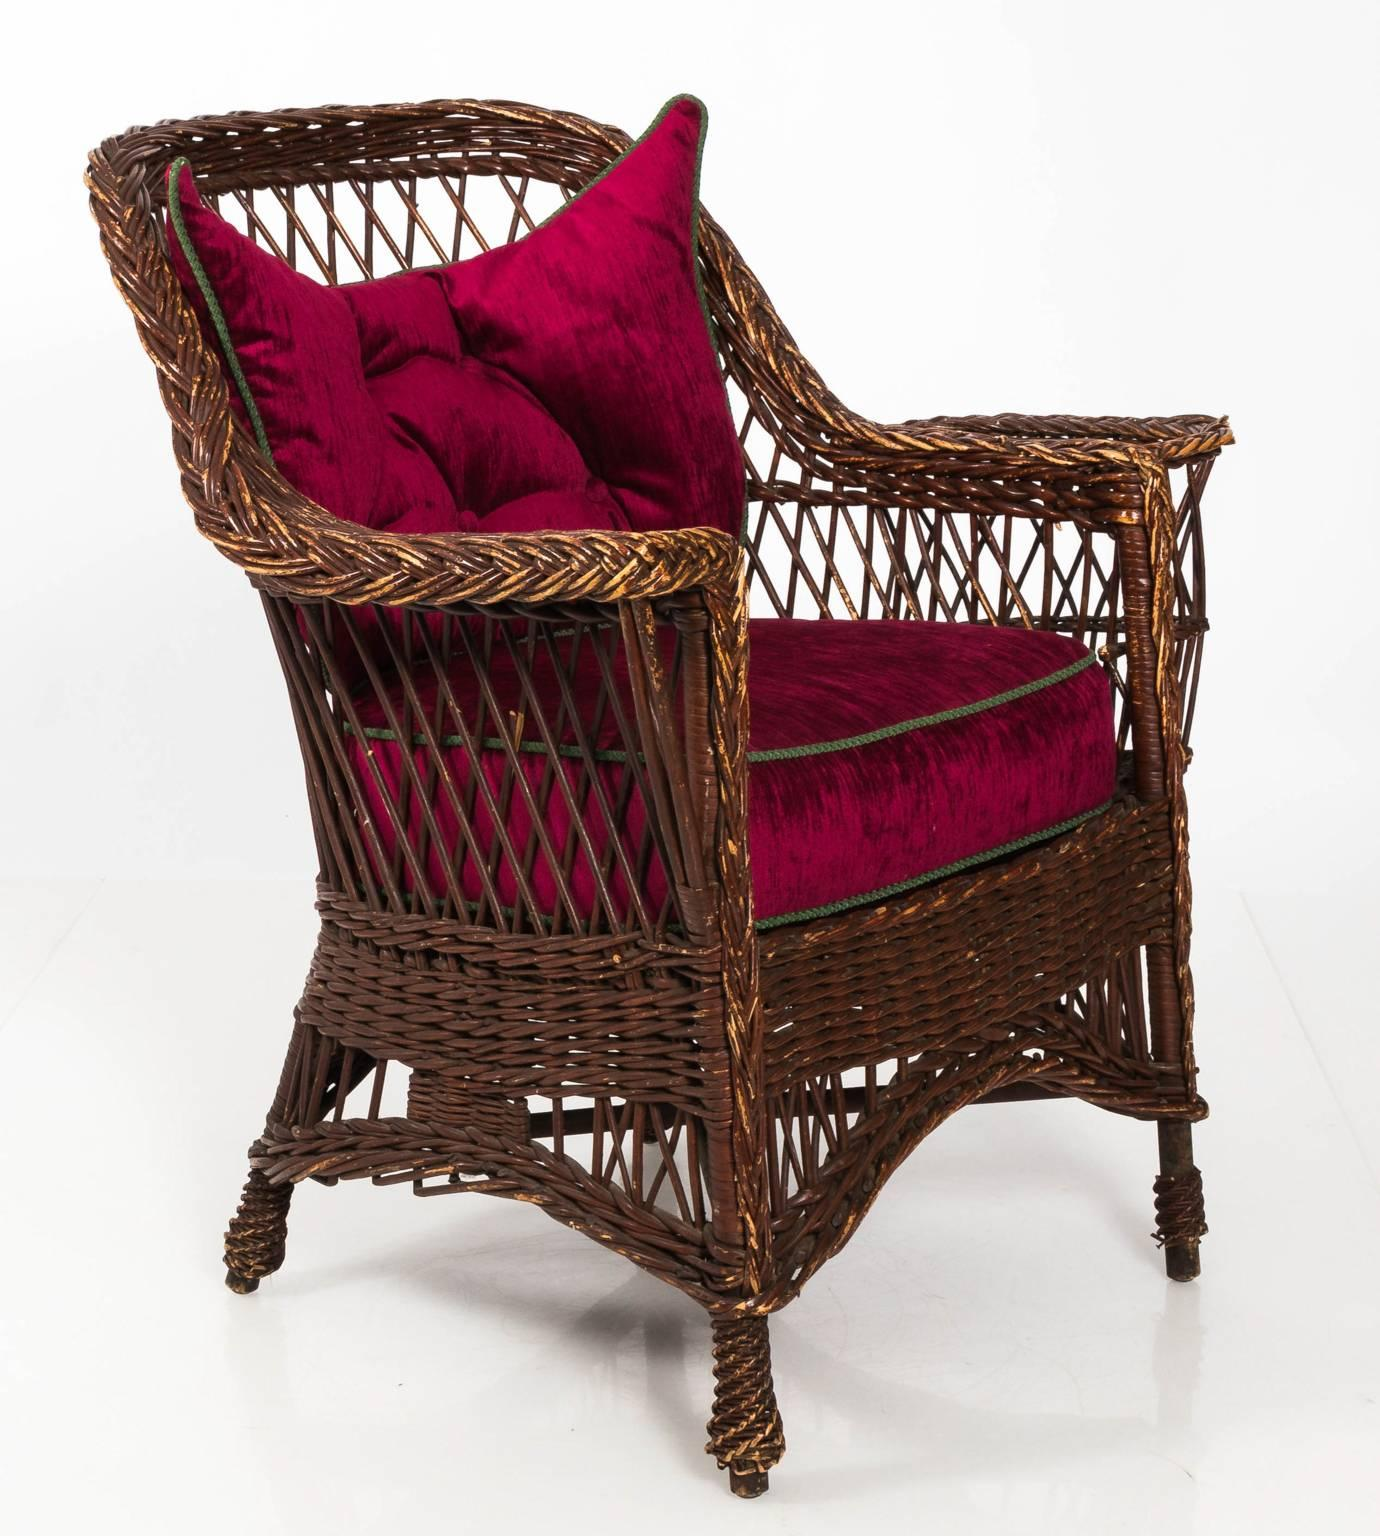 Victorian Wicker Chair For Sale 13